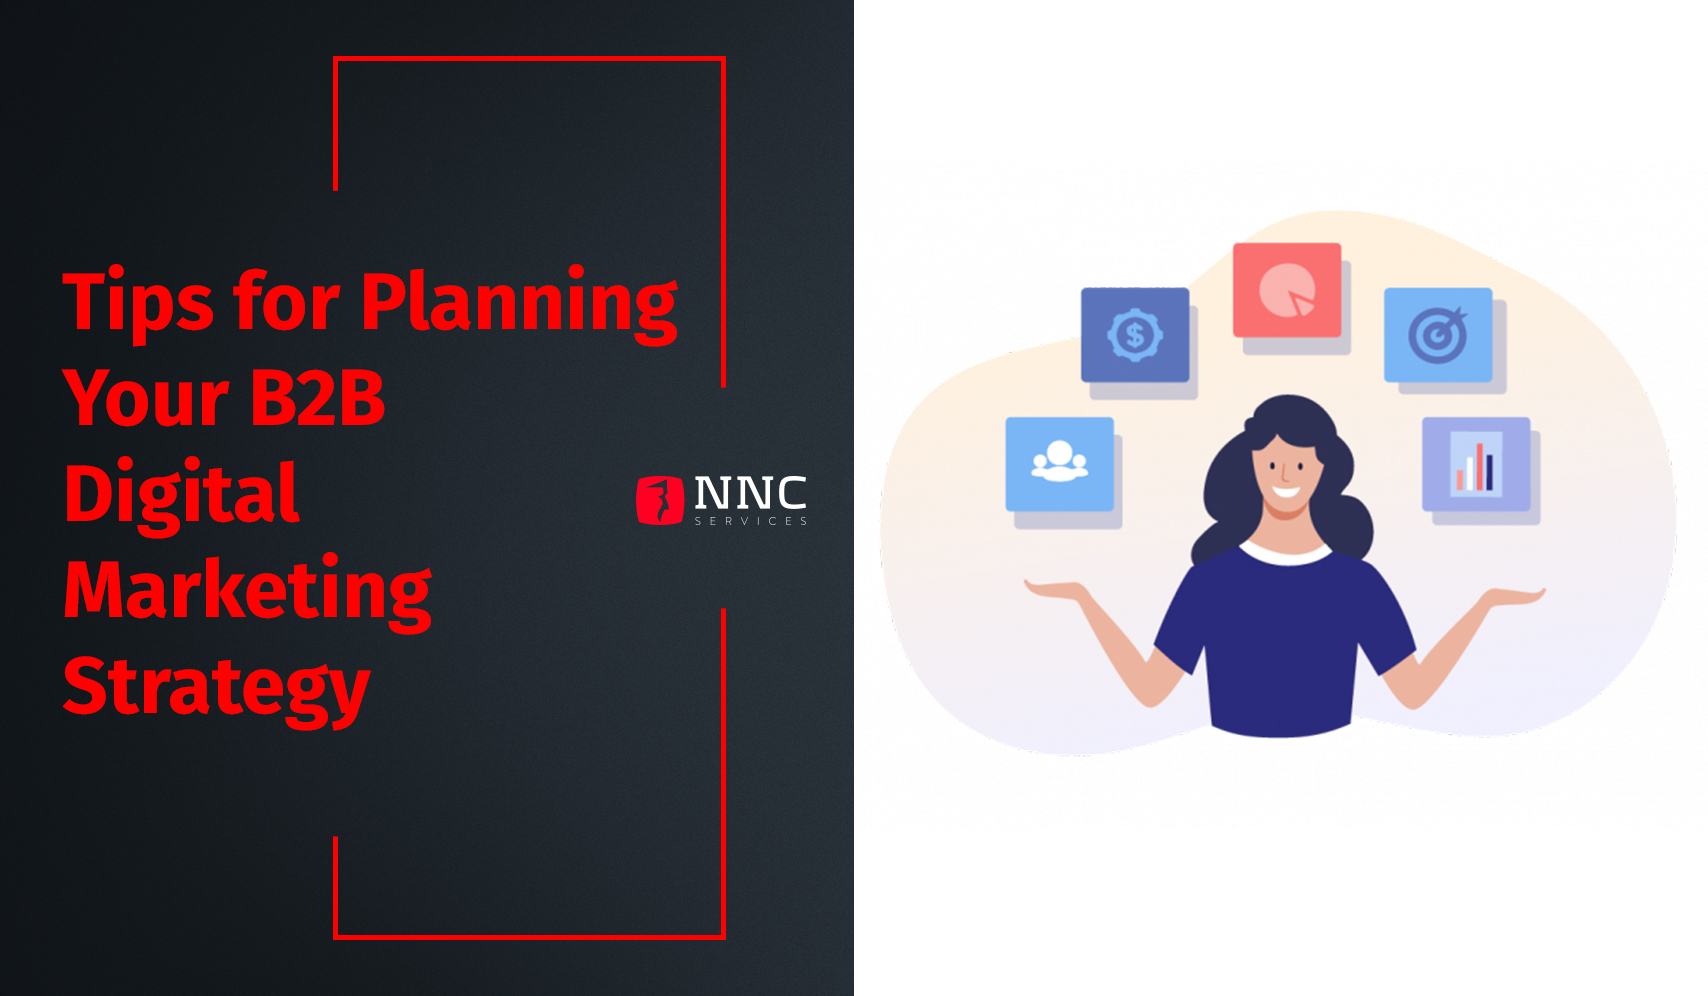 digital marketing planning for a scaling up B2B software outsourcing company